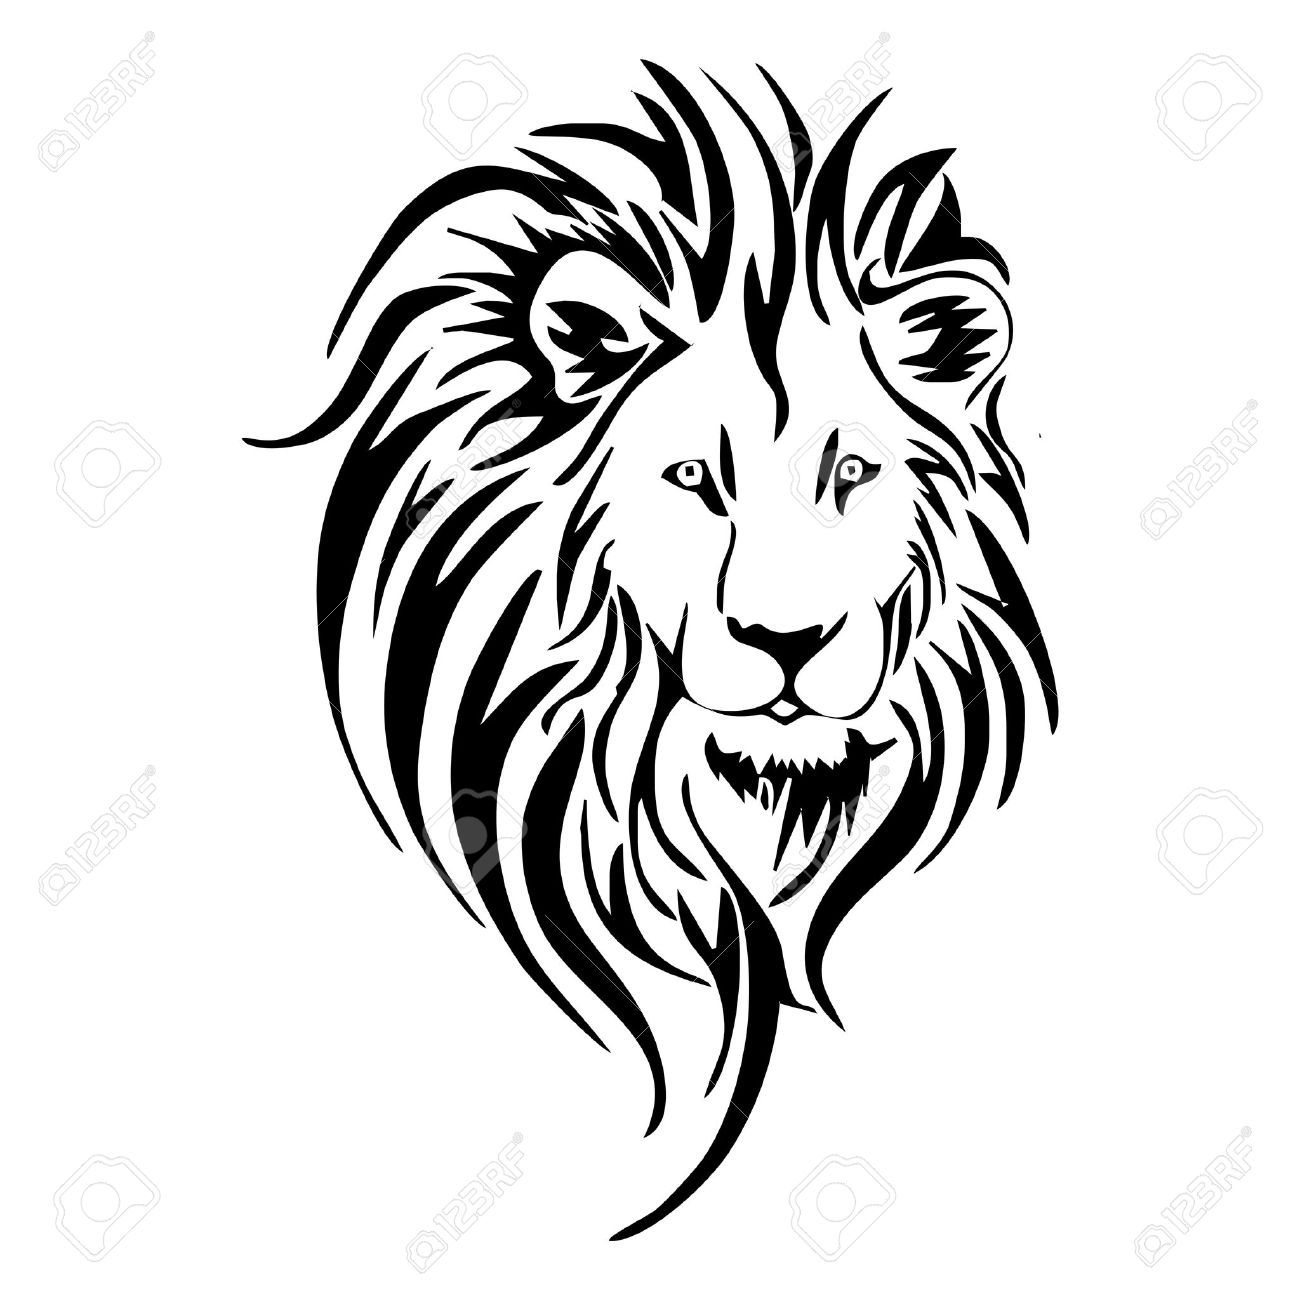 Aslan Clipart Black And White Outline